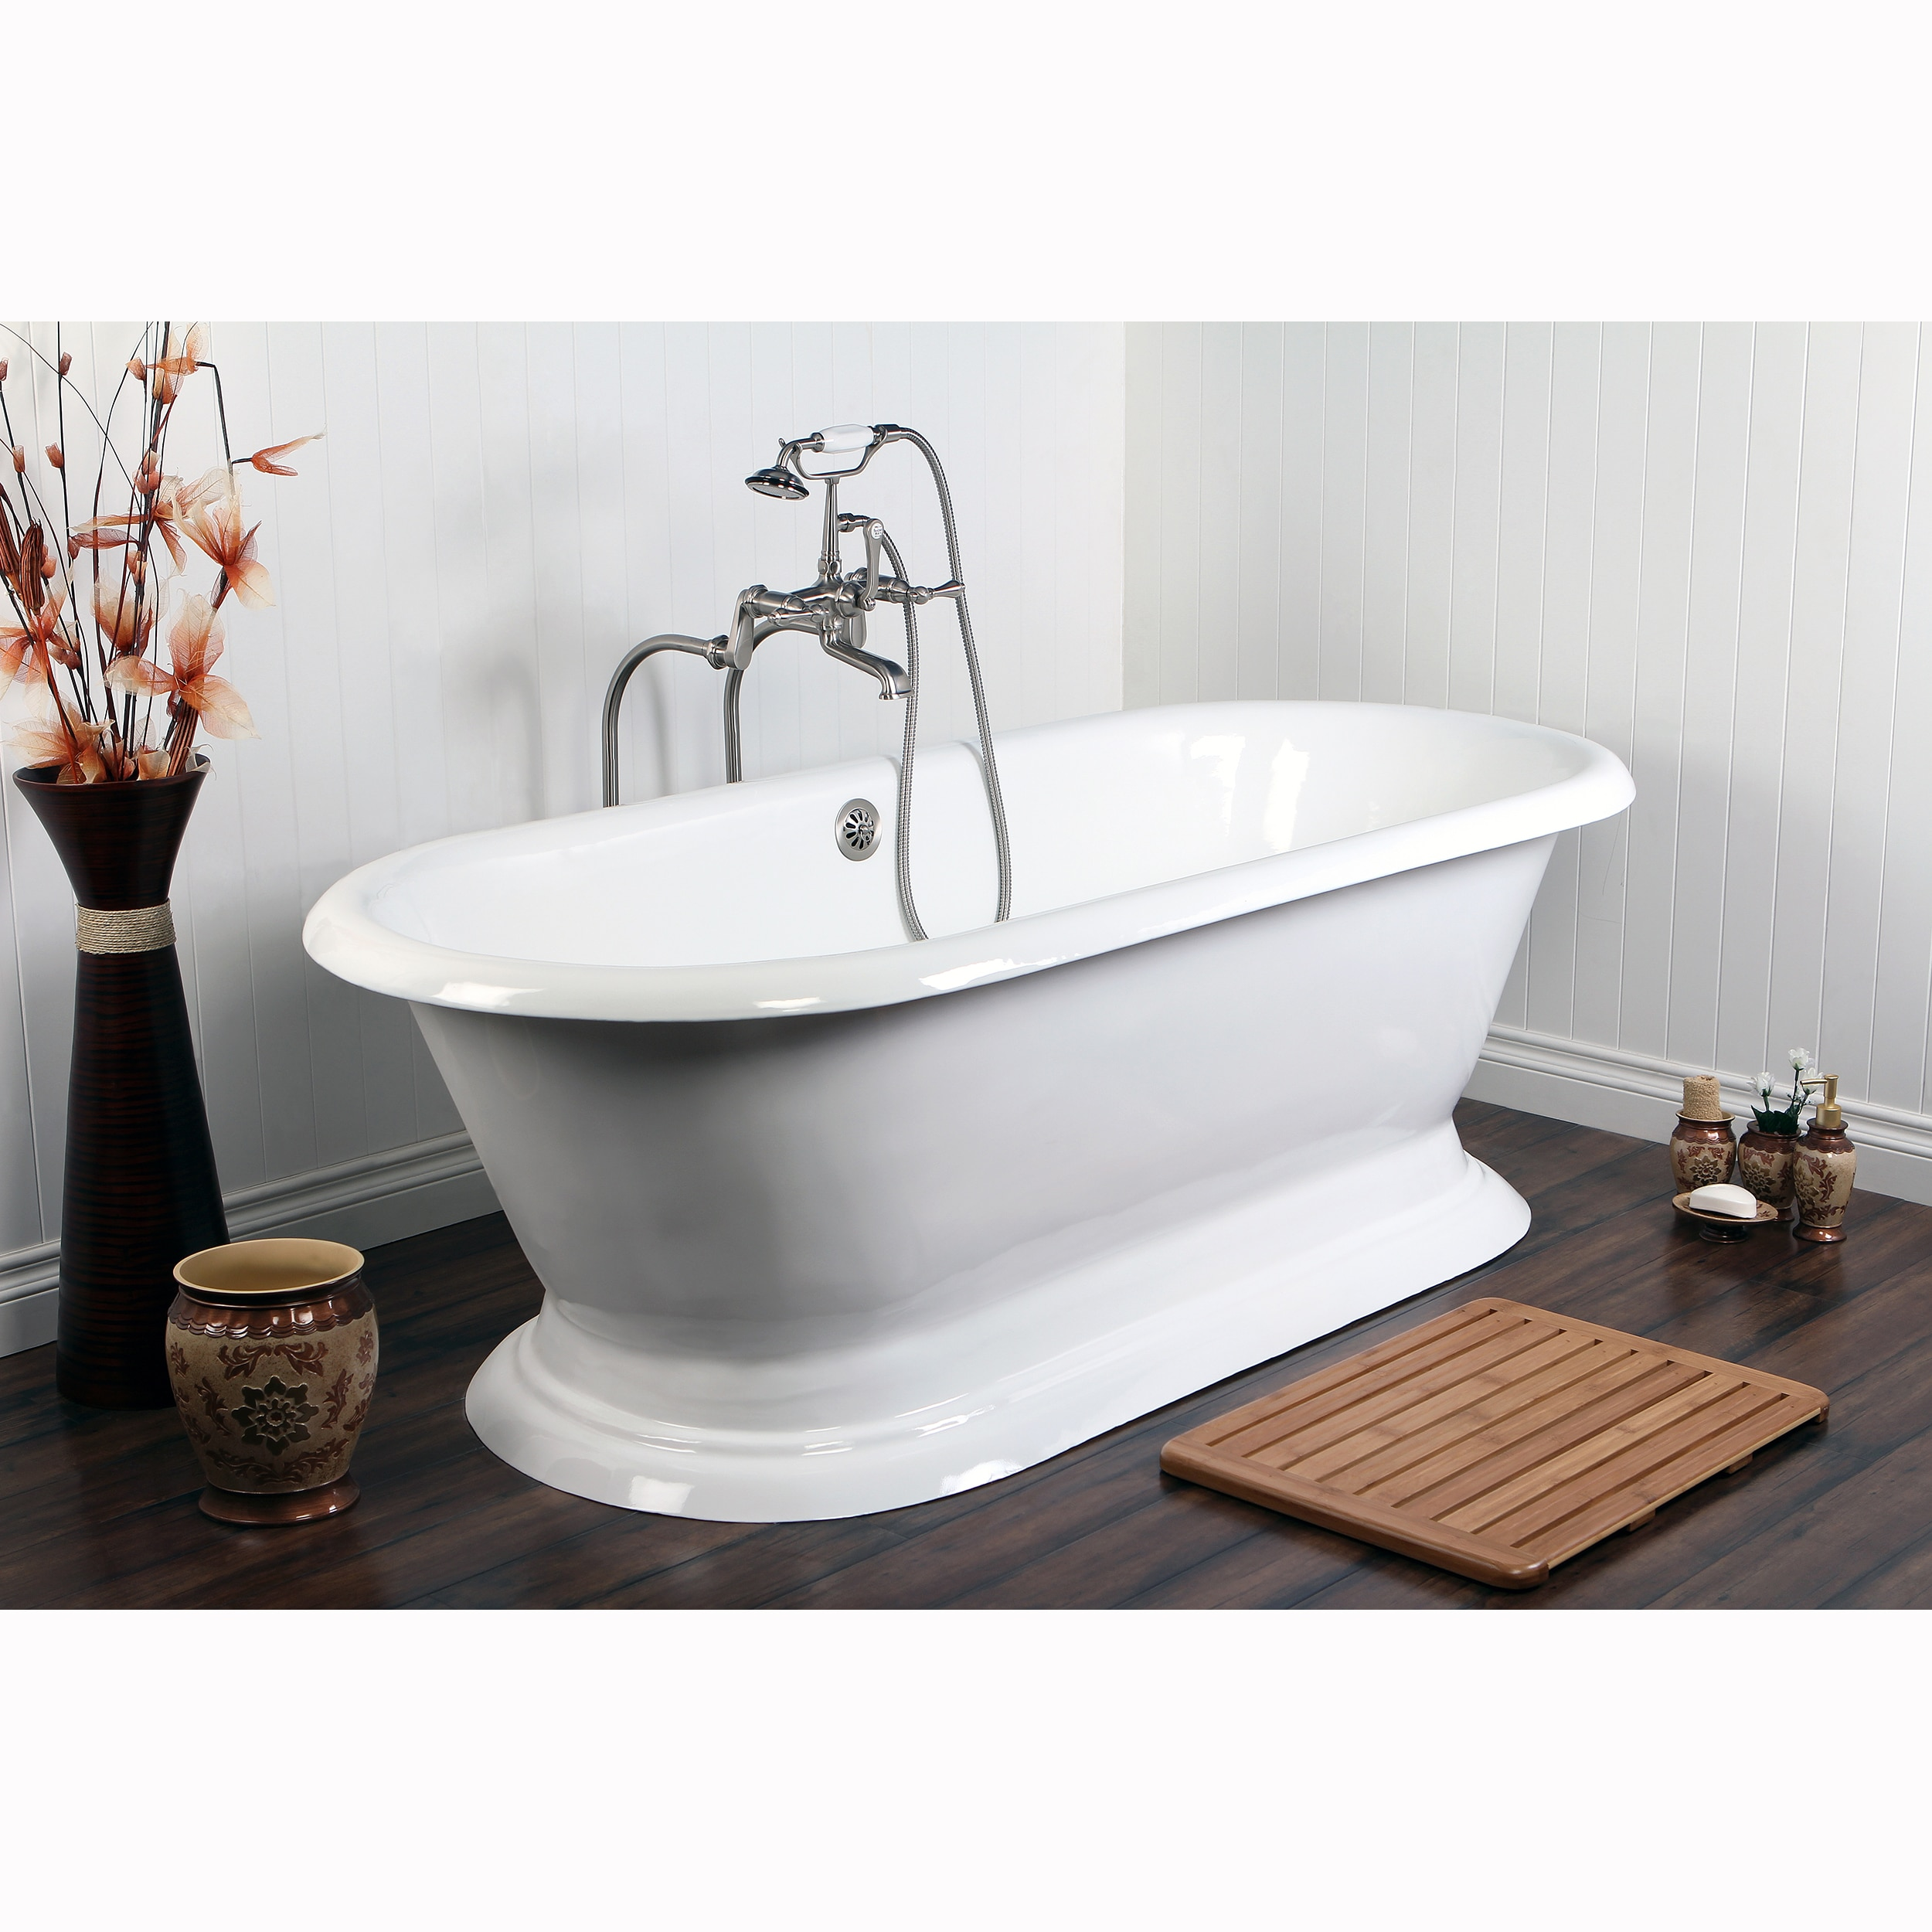 Shop Double-ended Cast Iron 72-inch Pedestal Bathtub - Free Shipping ...